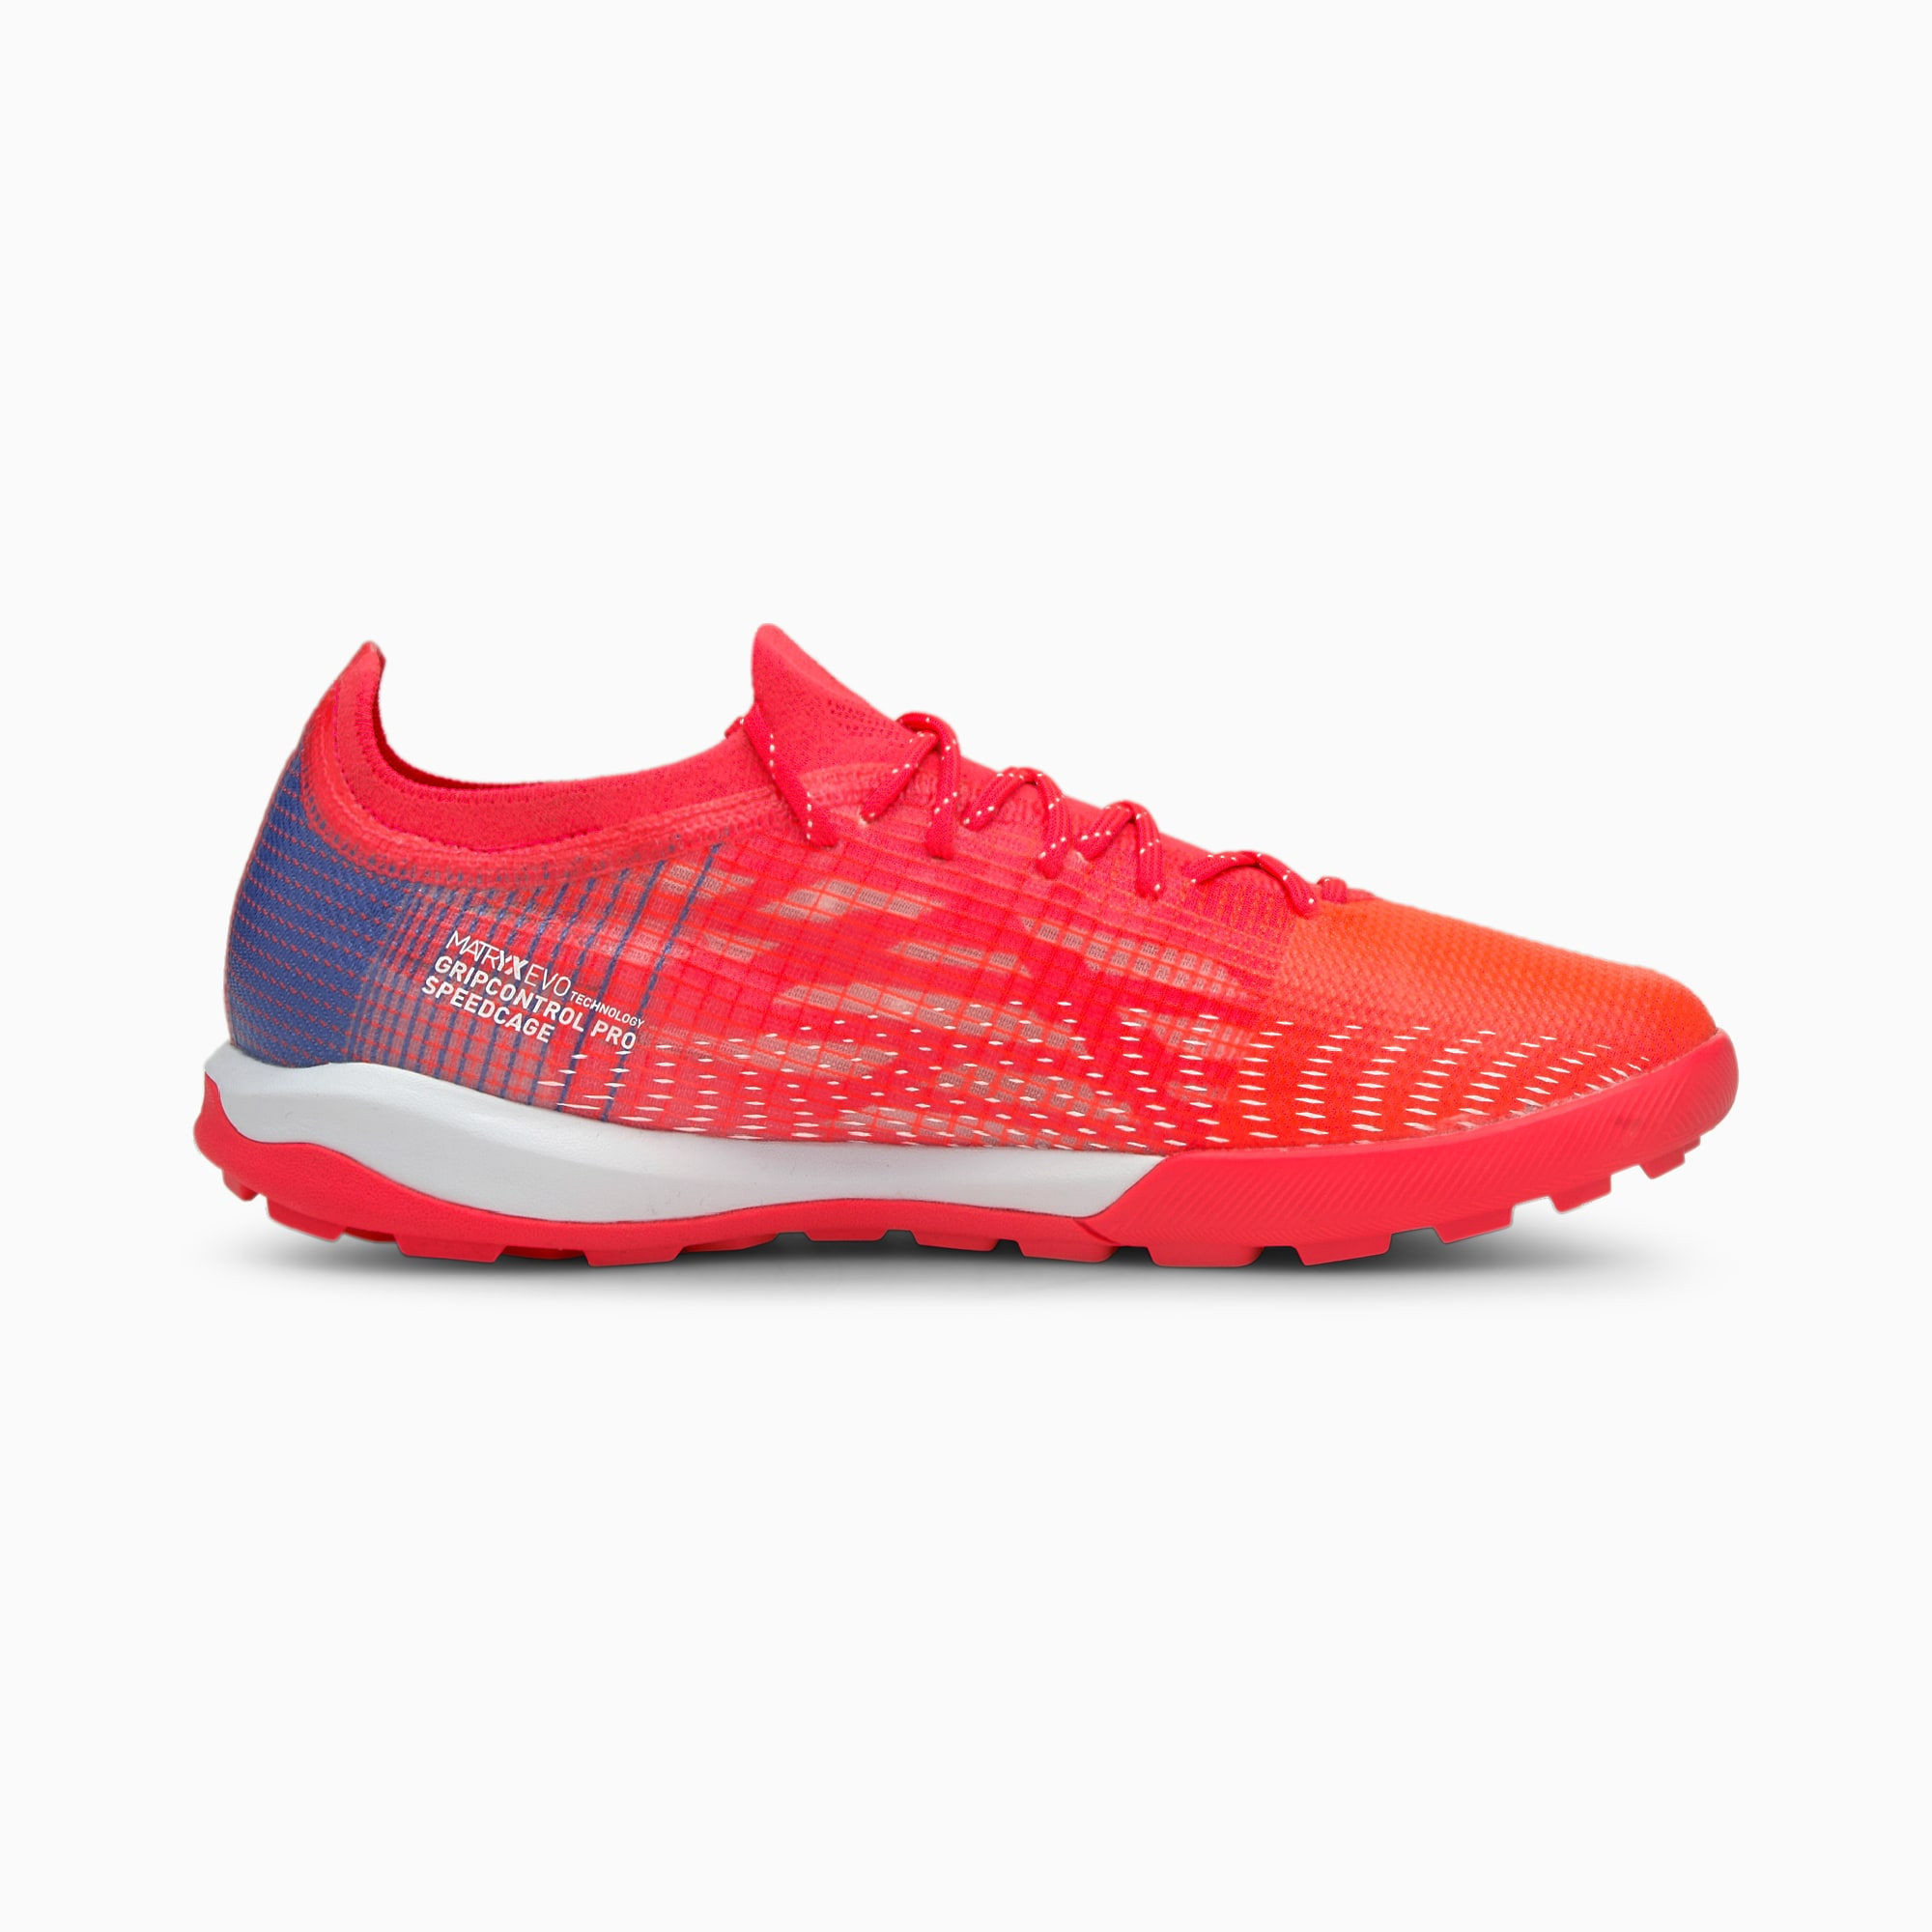 ULTRA 1.3 PRO CAGE Men's Soccer Cleats